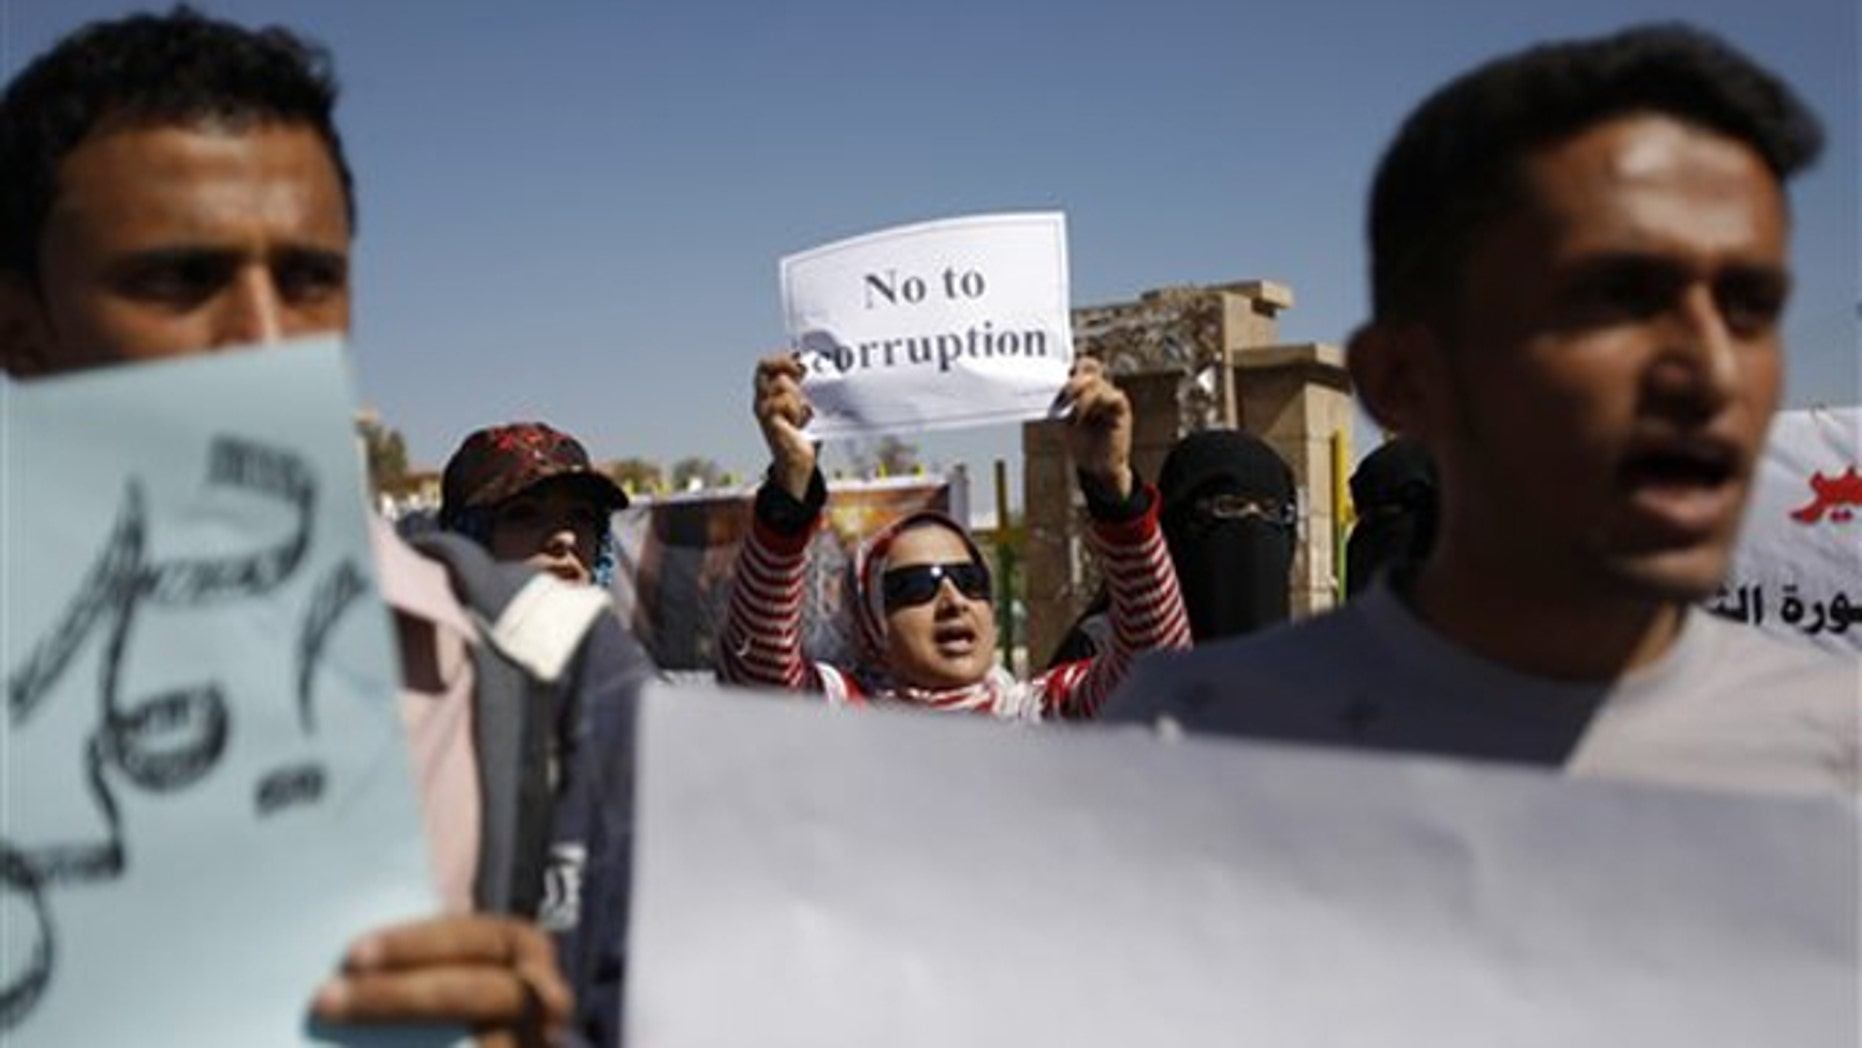 Yemeni demonstrators hold placards during an anti-government protest in Sanaa, Yemen, Feb. 10.